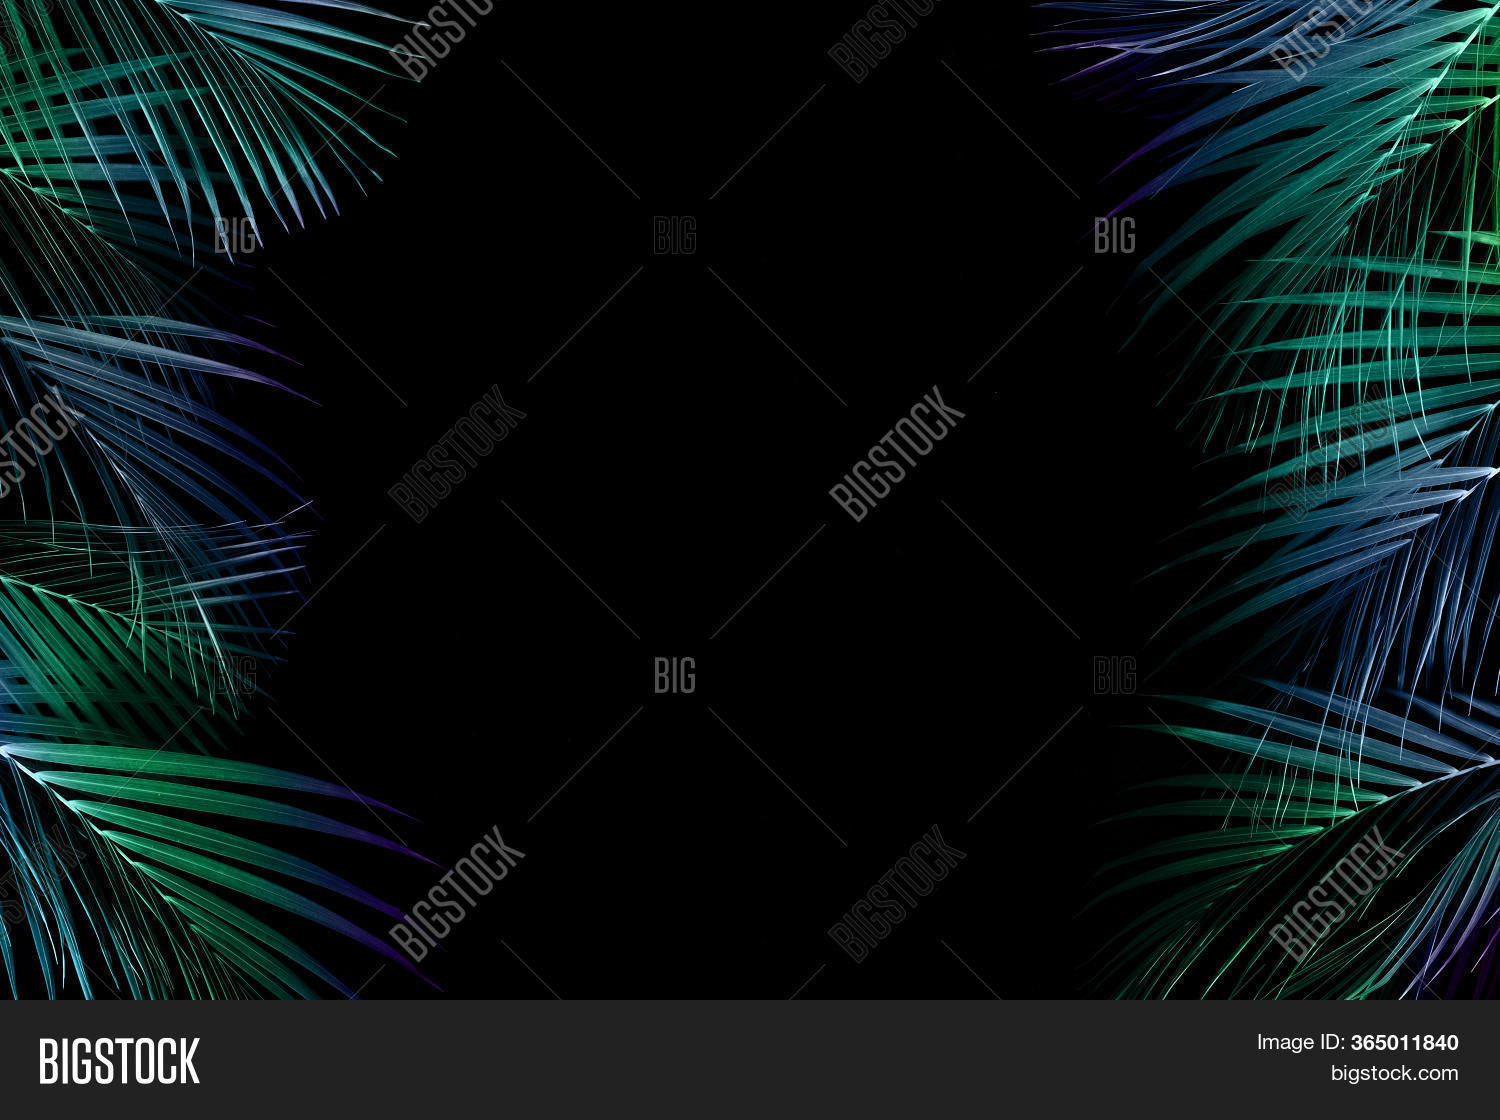 Tropical Palm Leaves Image Photo Free Trial Bigstock Download this free vector about black and golden tropical leaves background, and discover more than 10 million professional graphic resources on freepik. bigstock